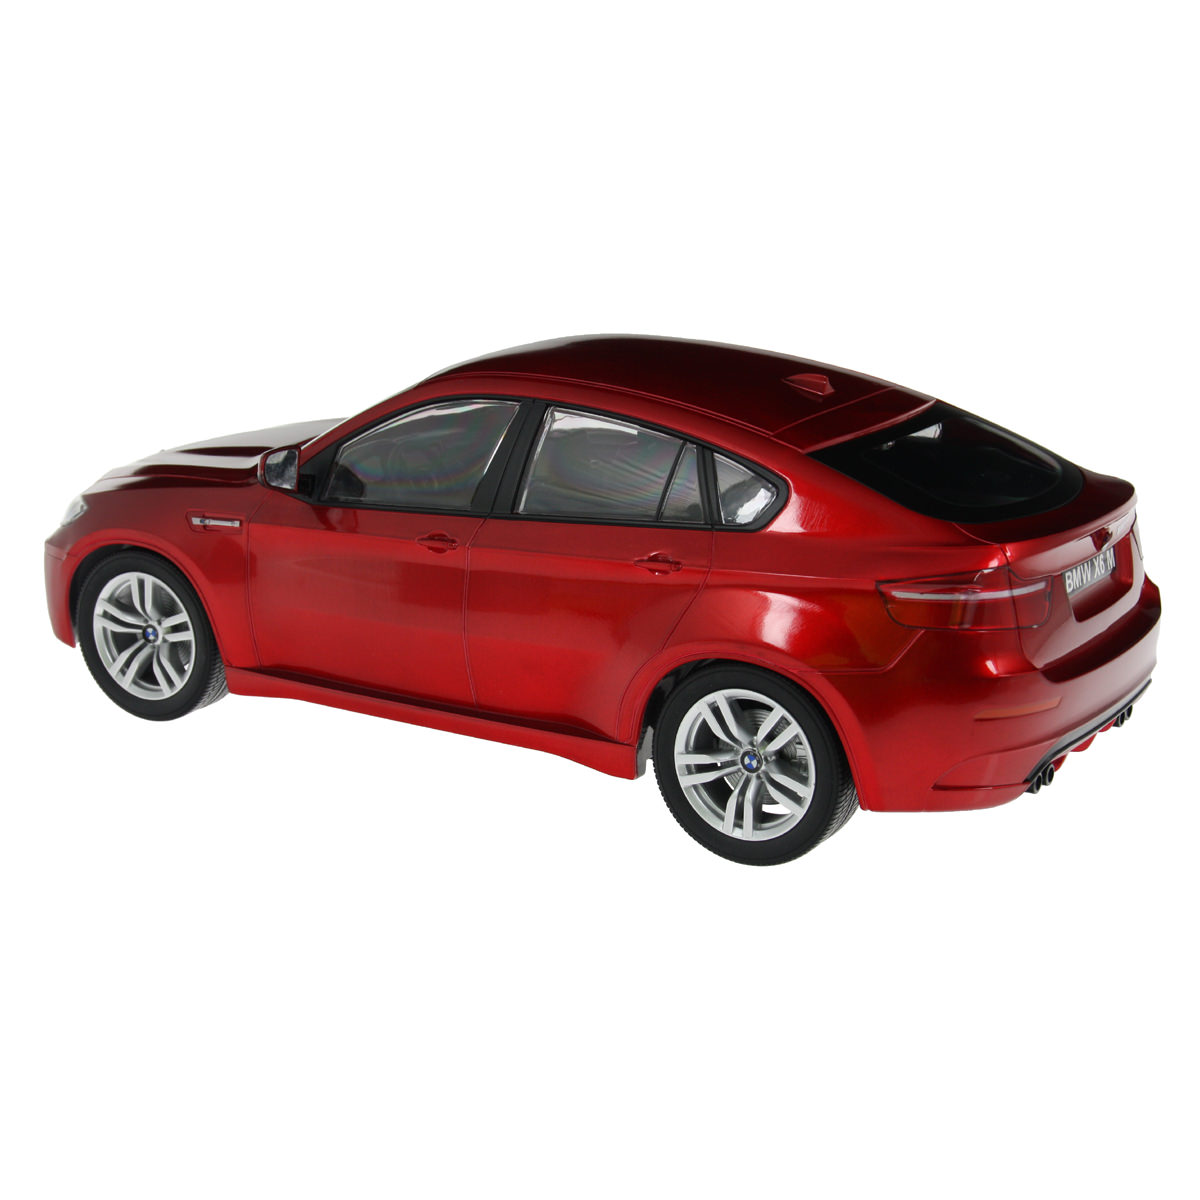 mjx 8541a red bmw x6 m edition rc car at hobby warehouse. Black Bedroom Furniture Sets. Home Design Ideas